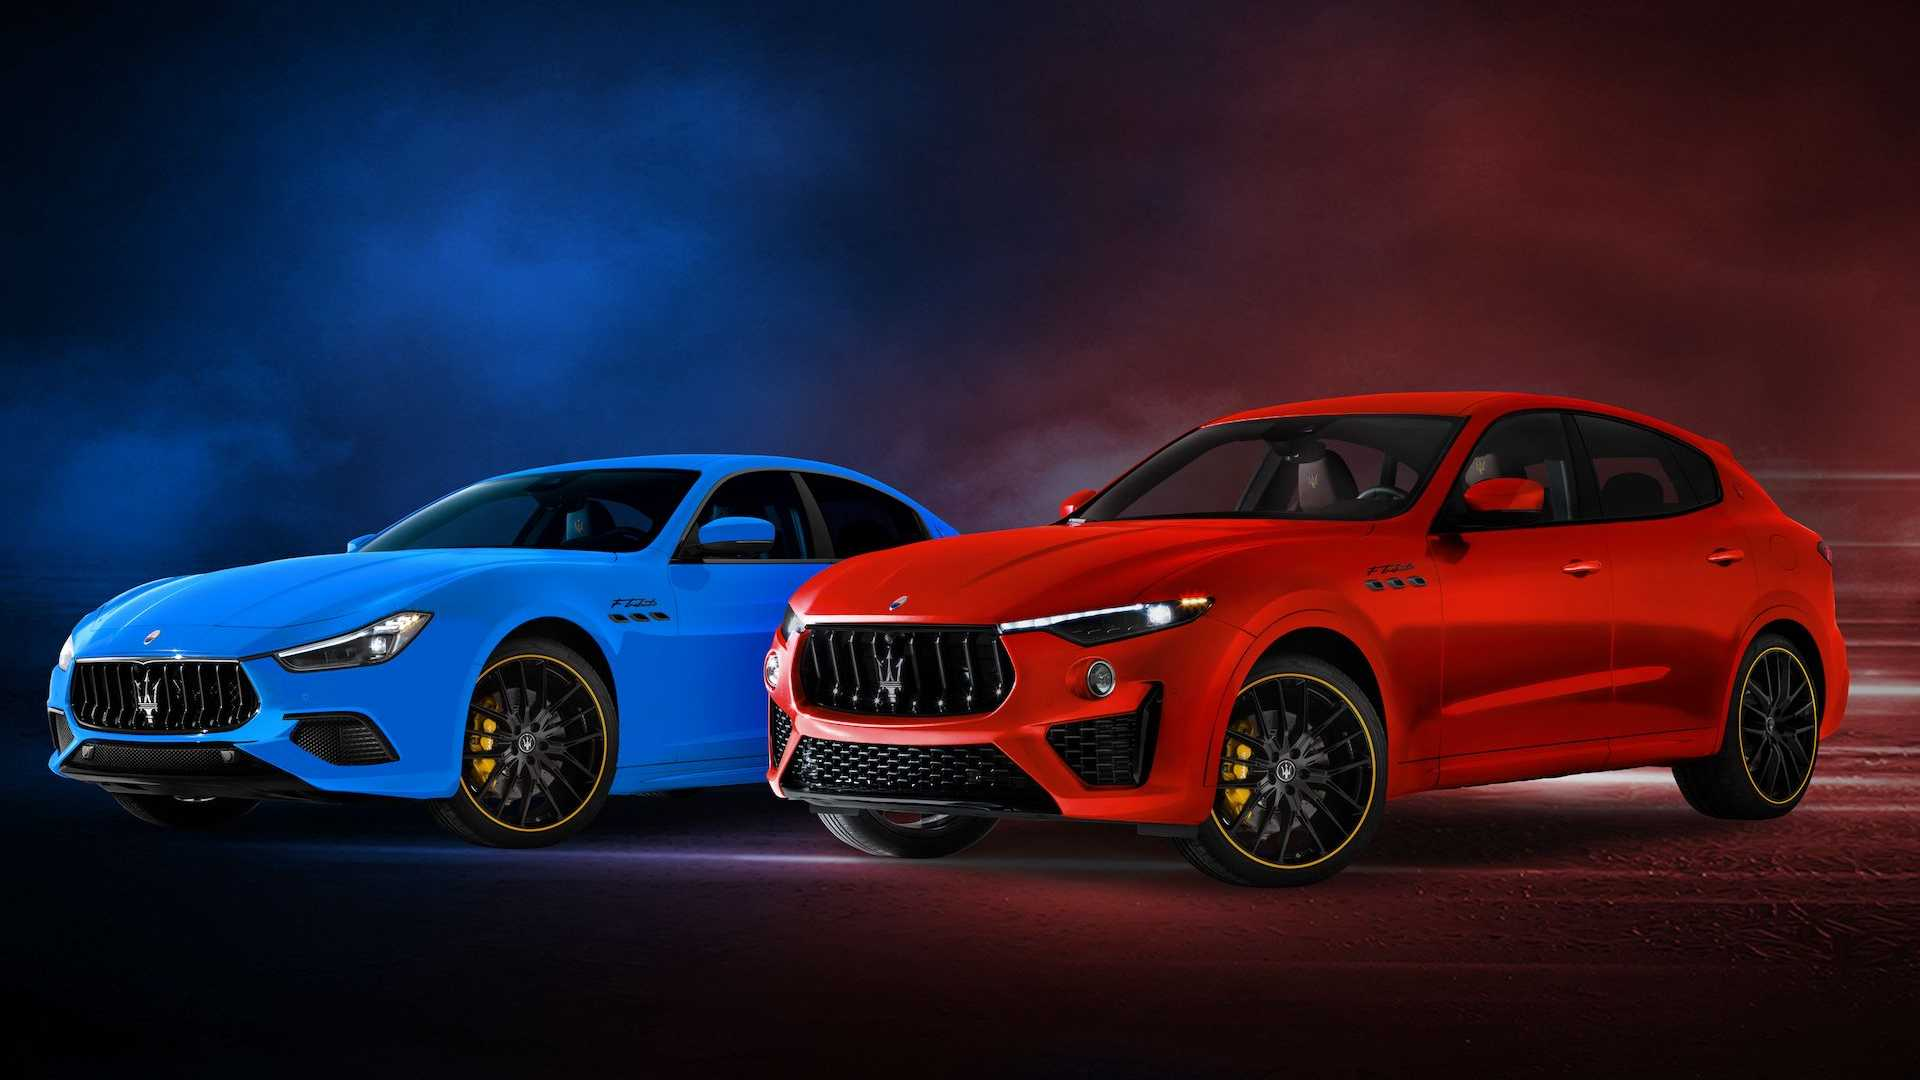 Like most other automakers with history to speak of, Maserati has had its share of motorsports victories. To pay homage to its roots, the Itailan company designed an F Tributo Special Edition of its Ghibli and Levante models in April. Now, the duo is available to buy in North America.